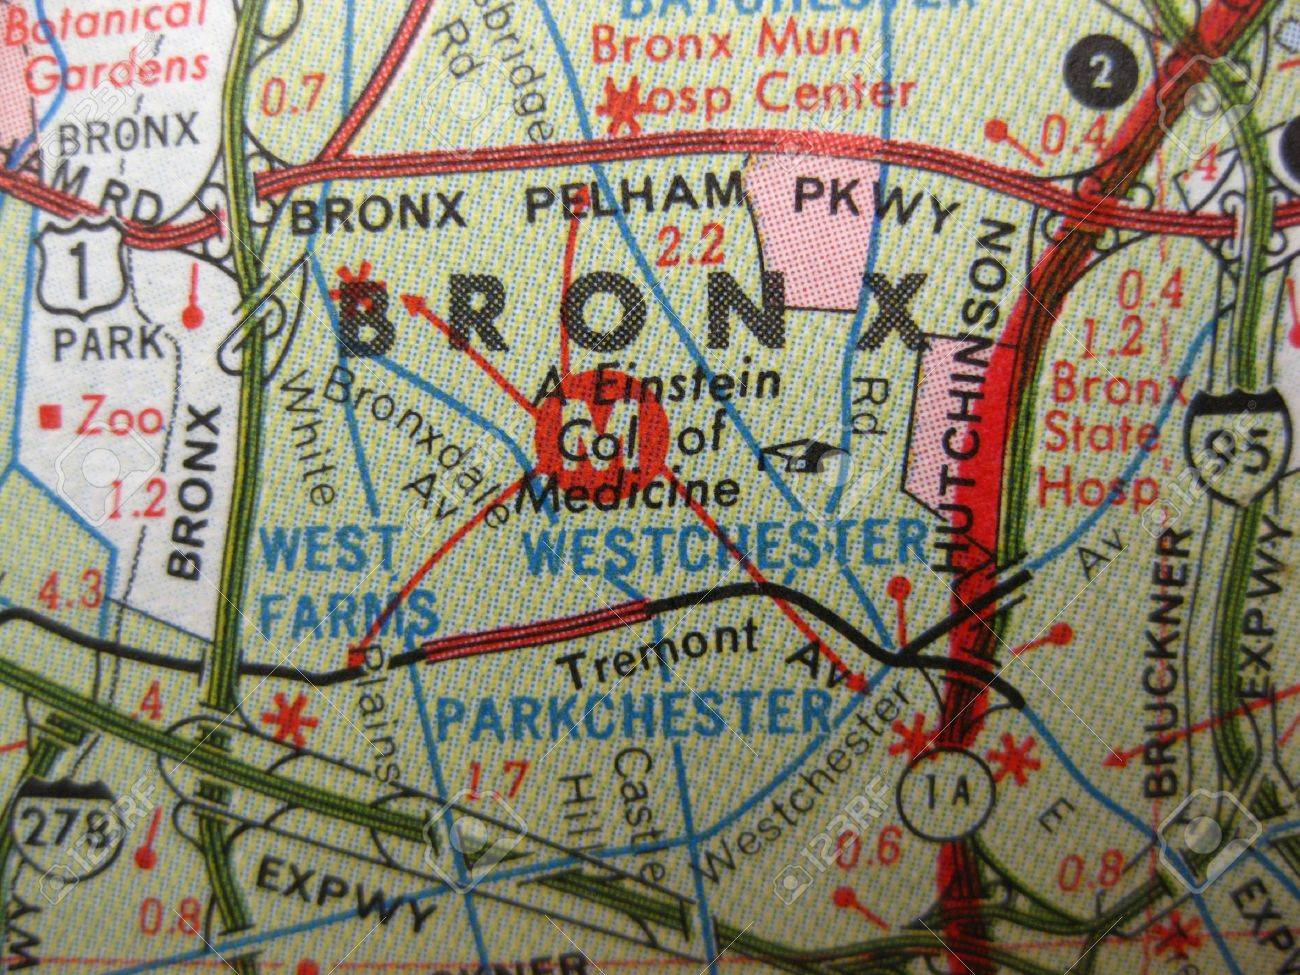 Map Of New York Bronx.Vintage Map Of The Bronx New York